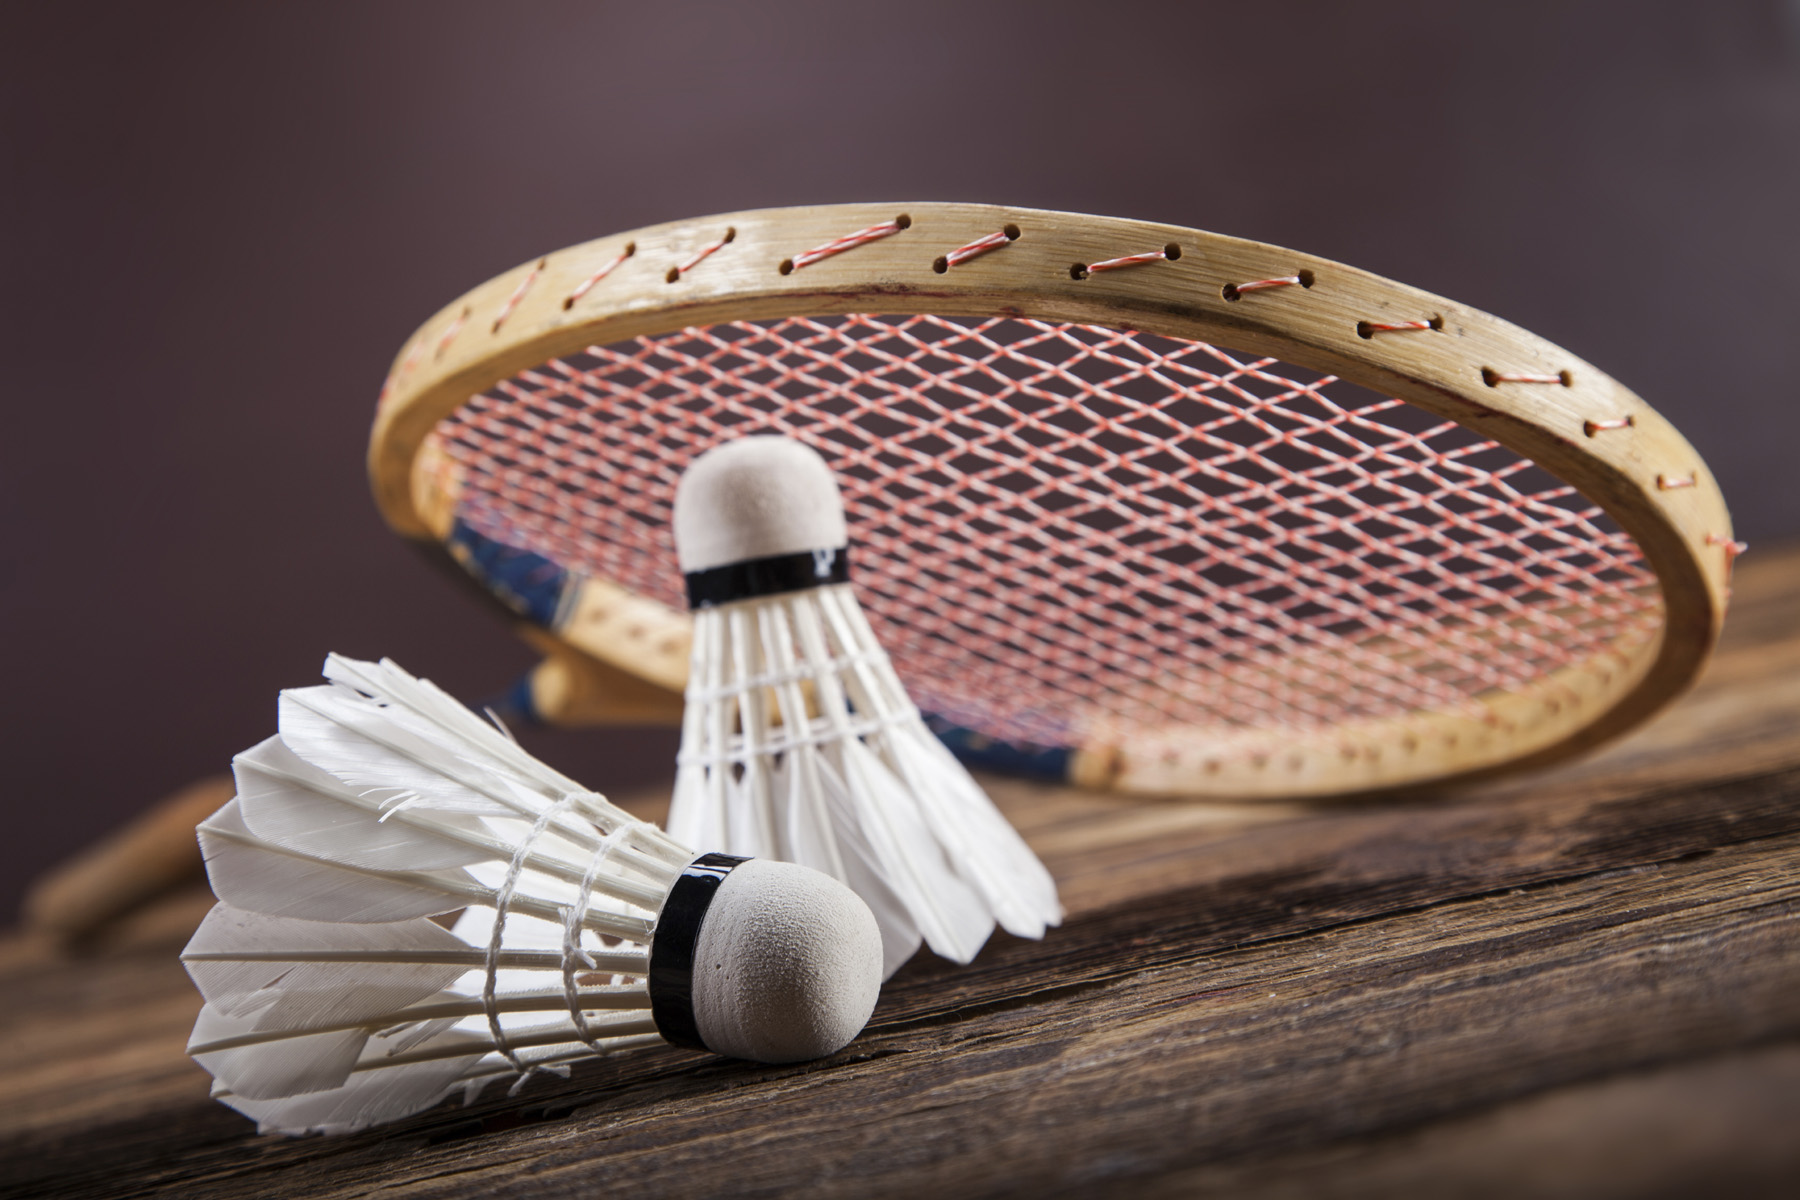 Badminton with wooden rackets 52036